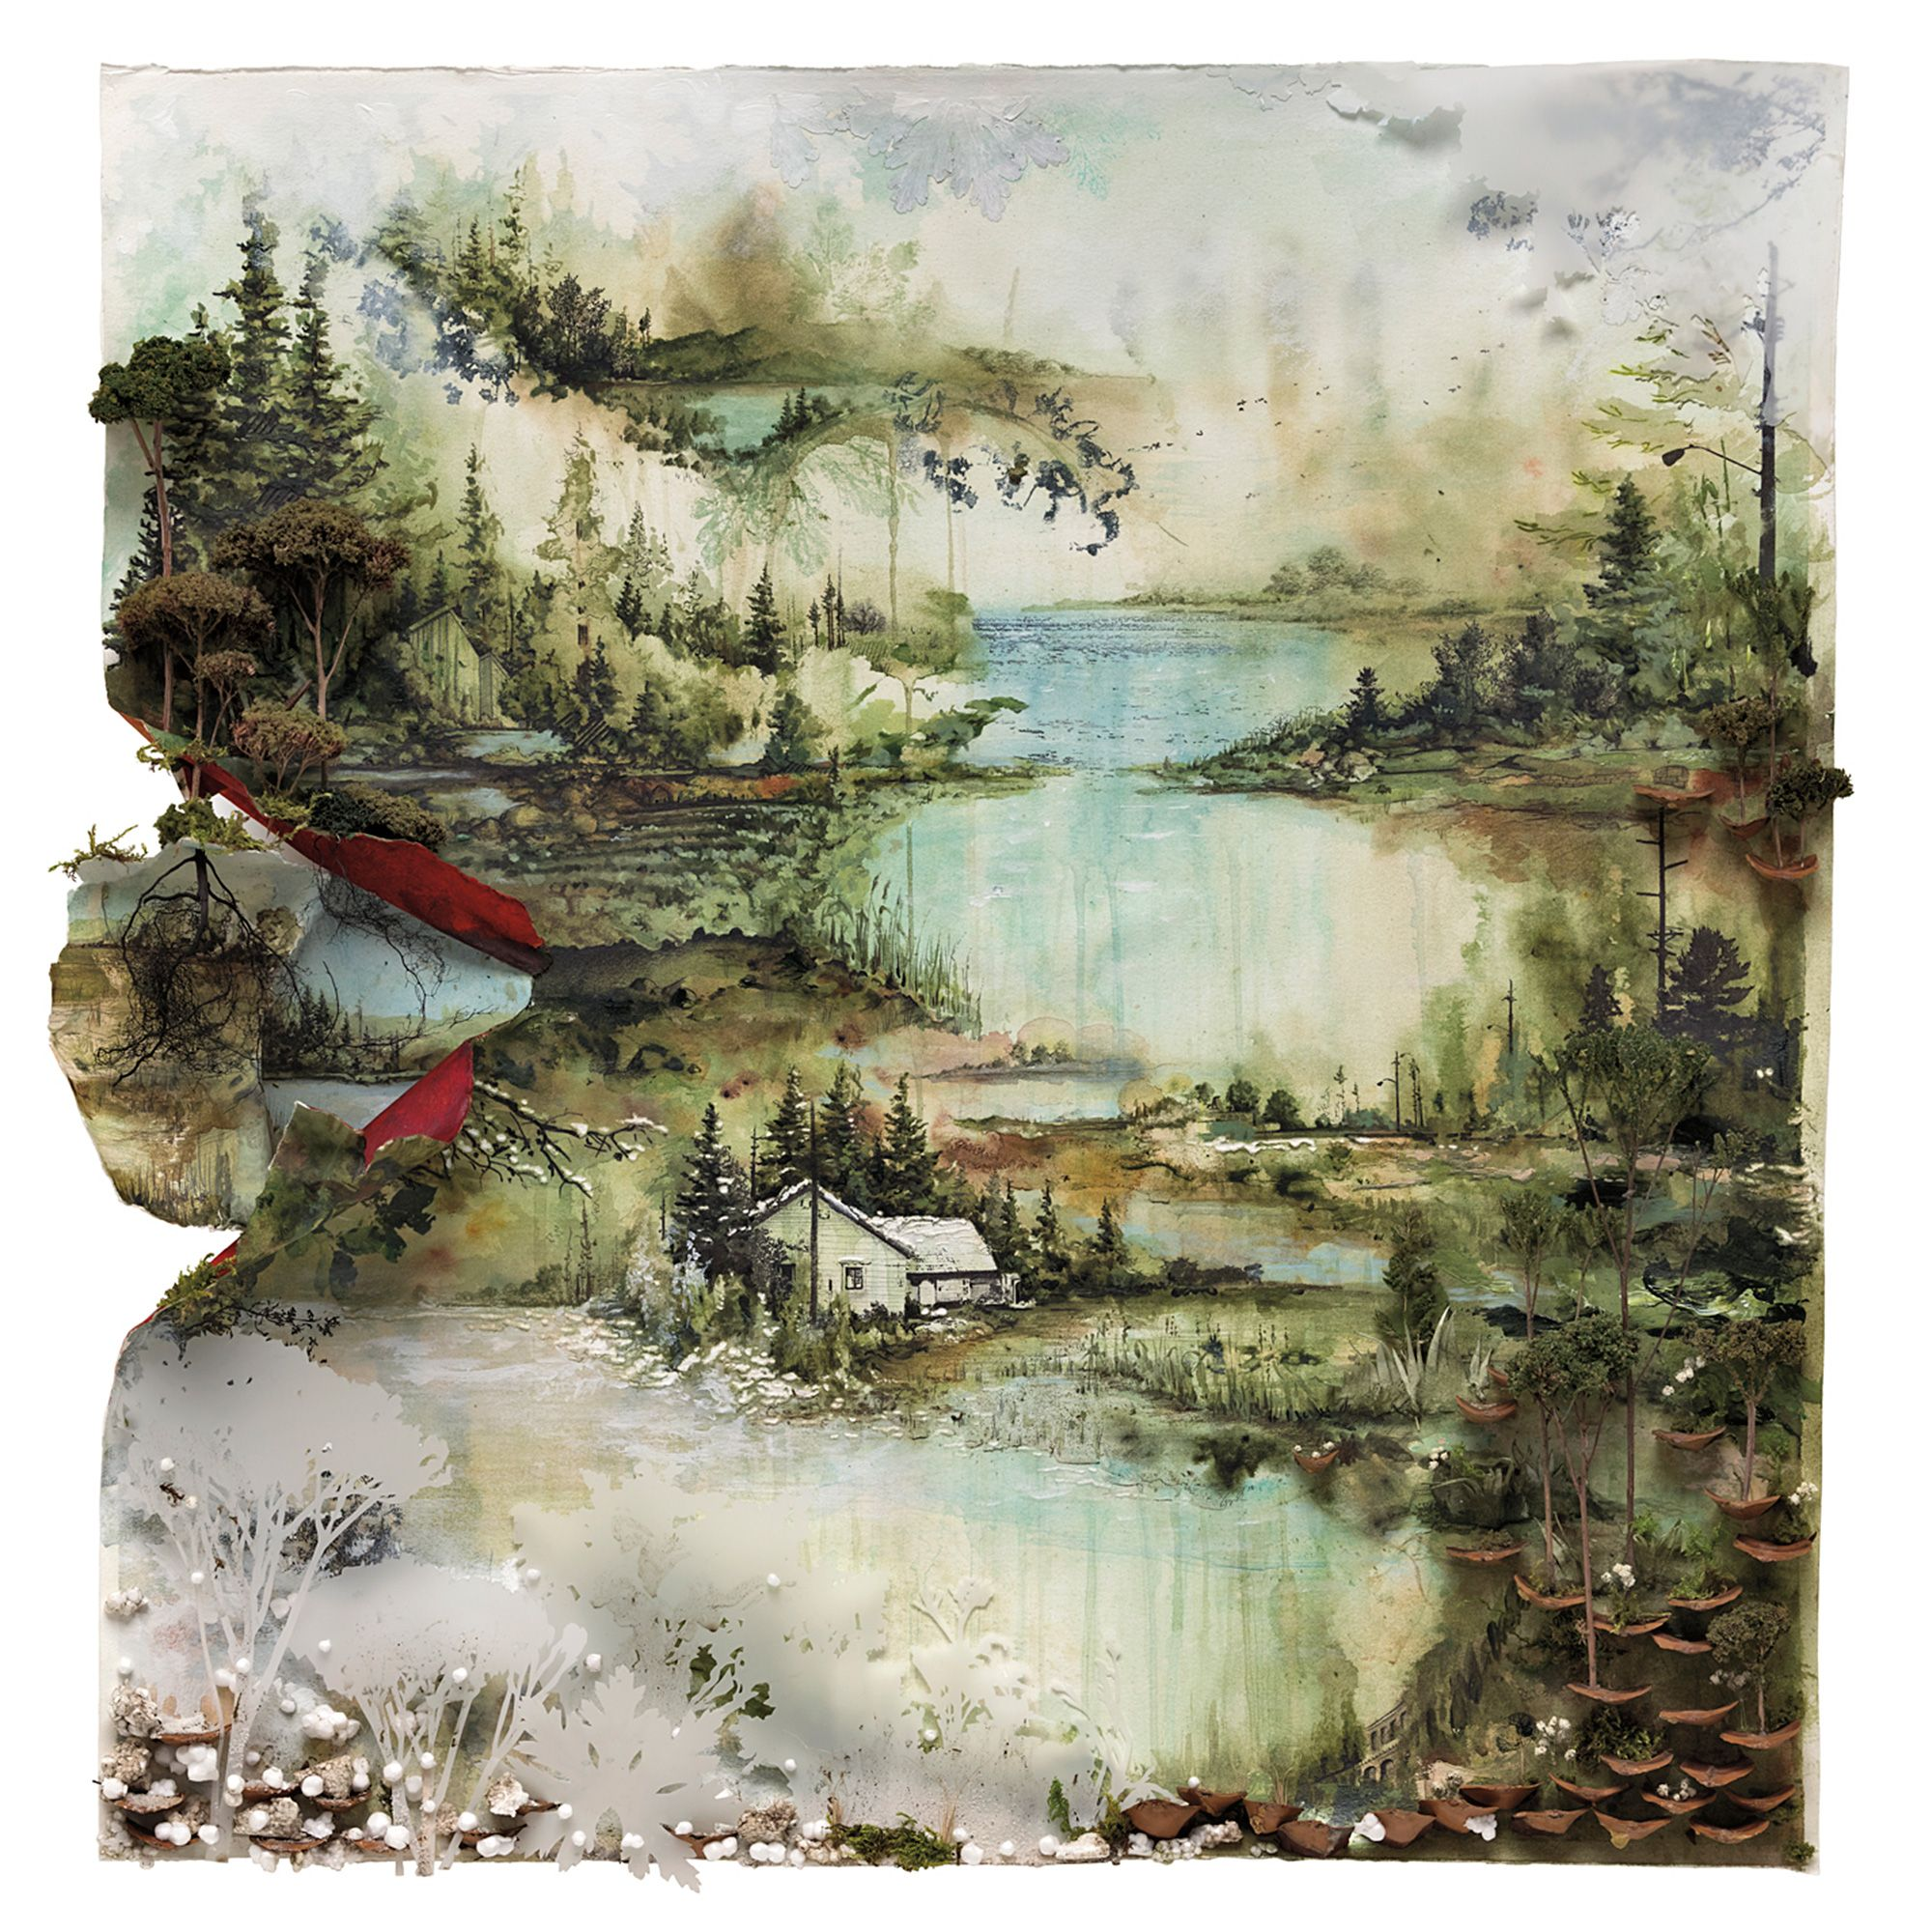 In pictures best album art of 2011 bon iver album and cinema bon iver makes me lol but this album cover art is superb hexwebz Gallery